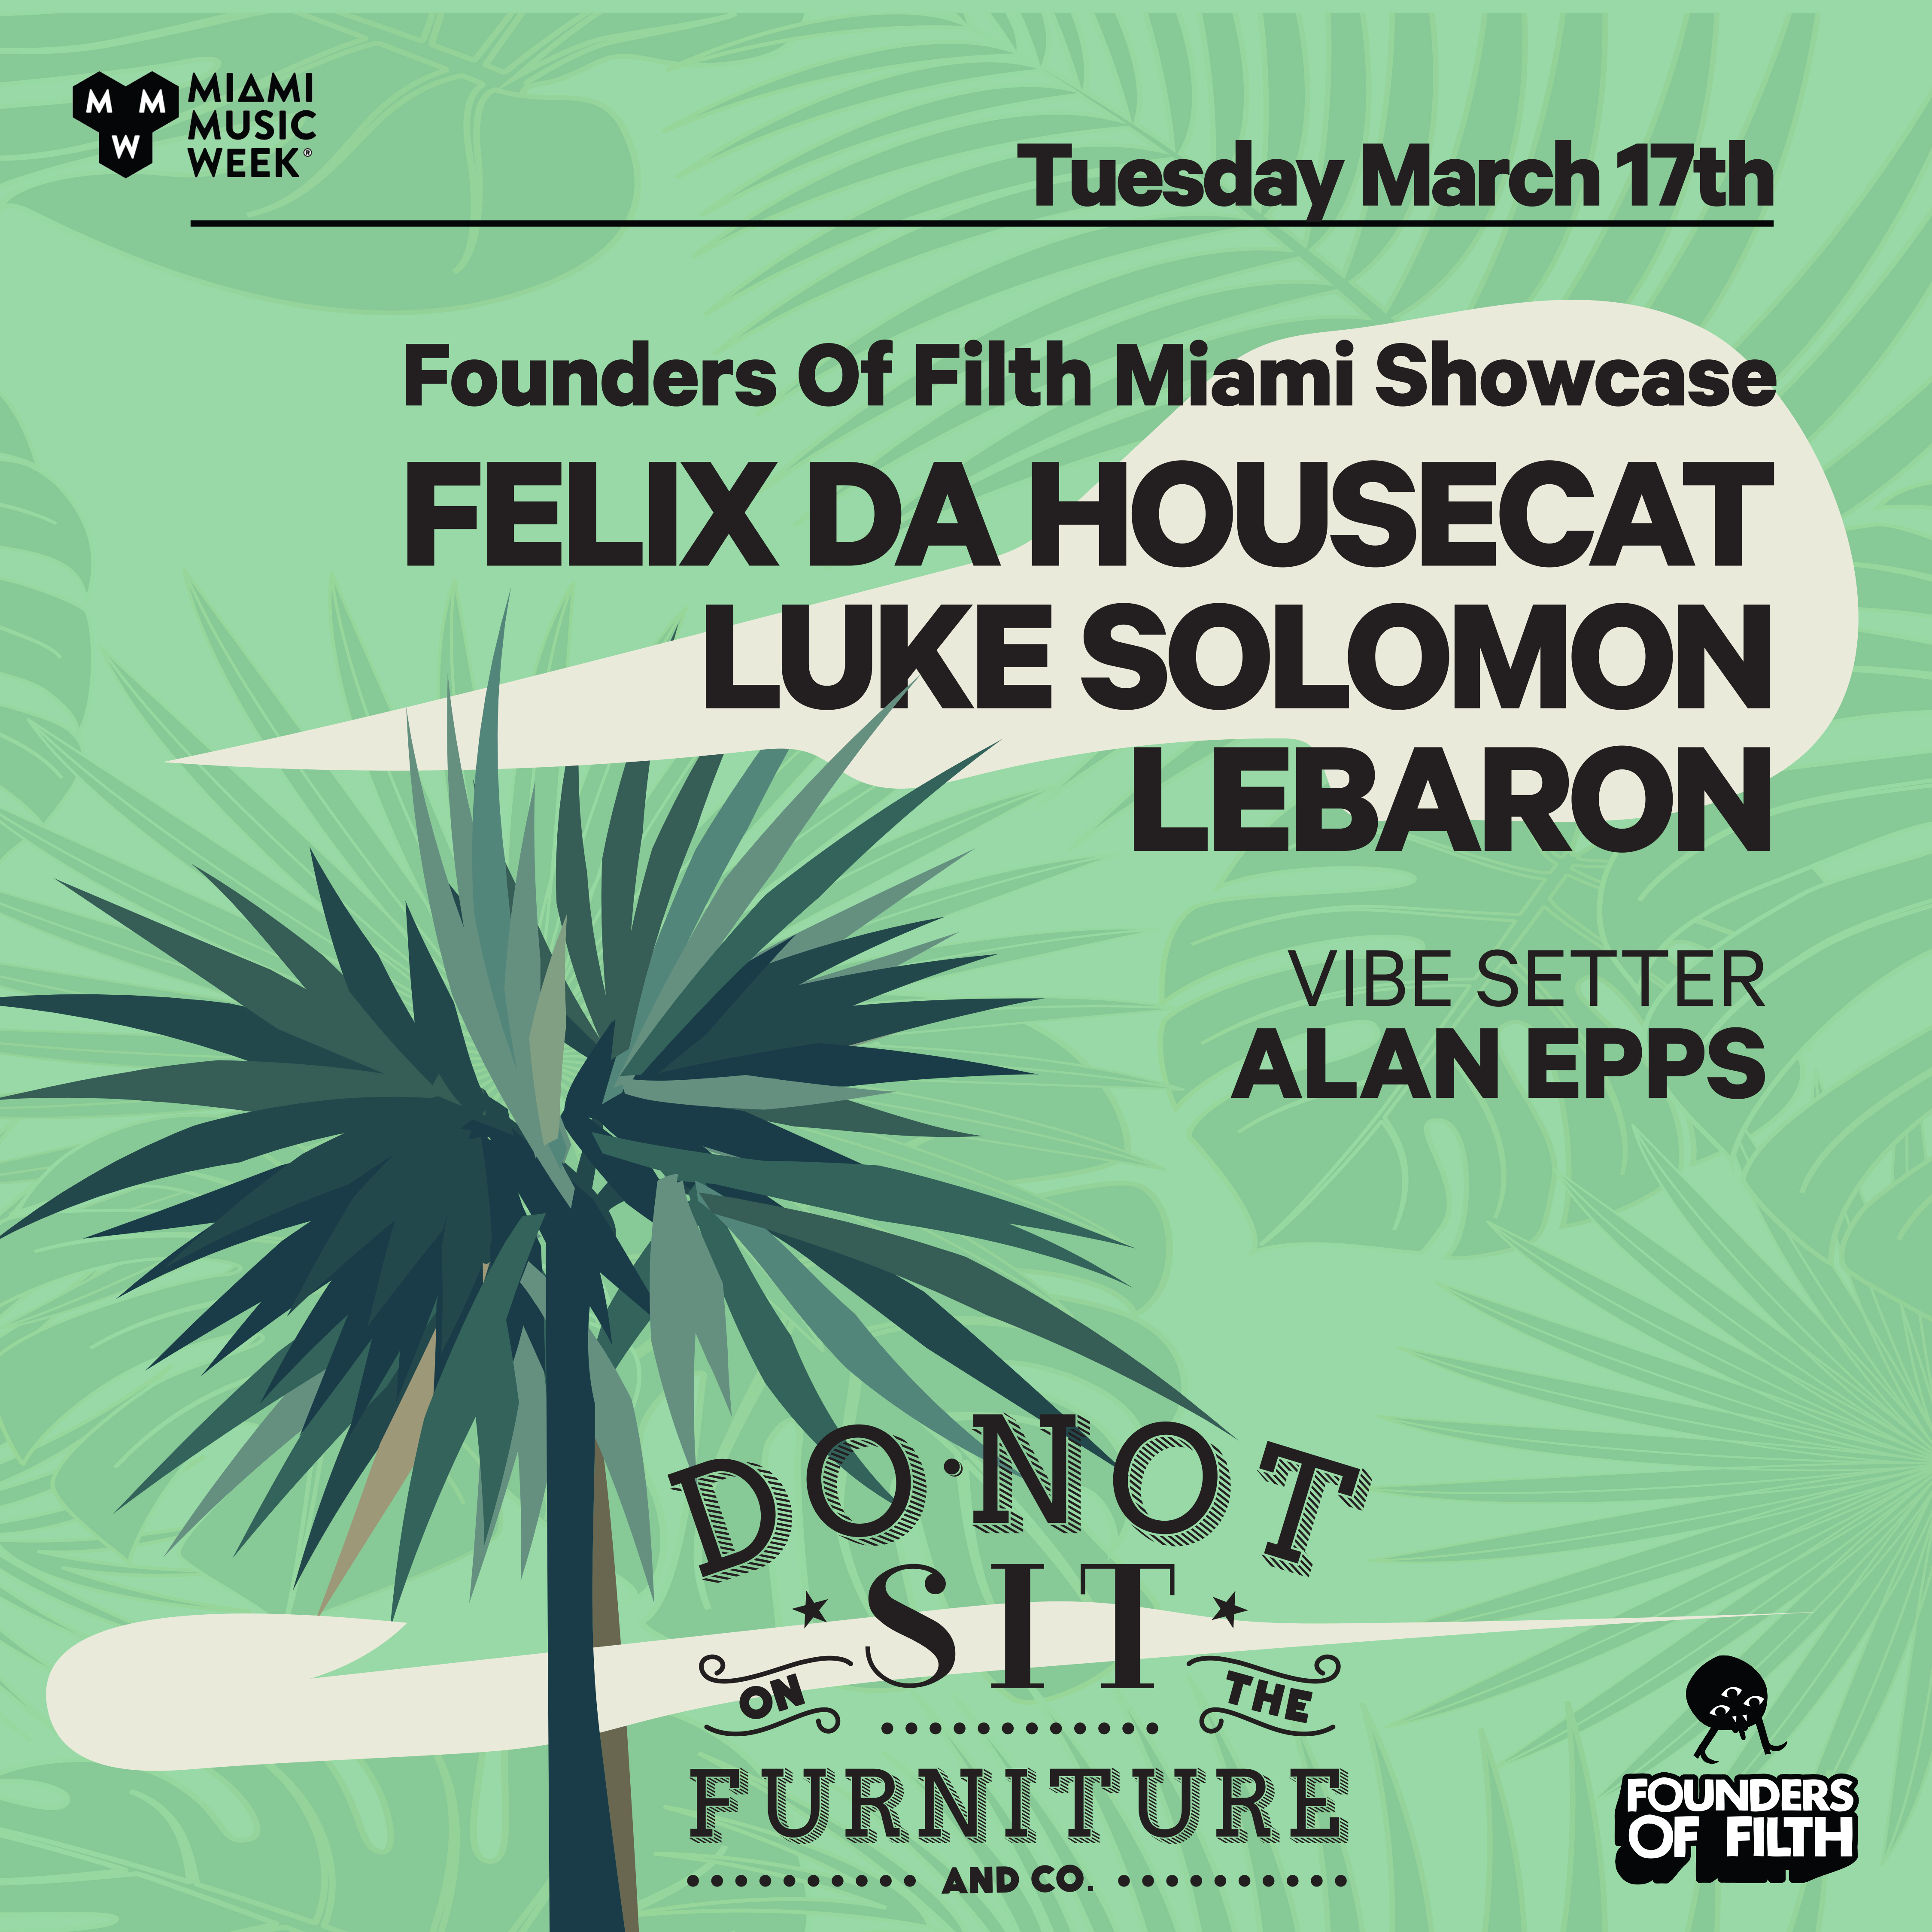 Founders of Filth Miami Music Week Showcase Flyer